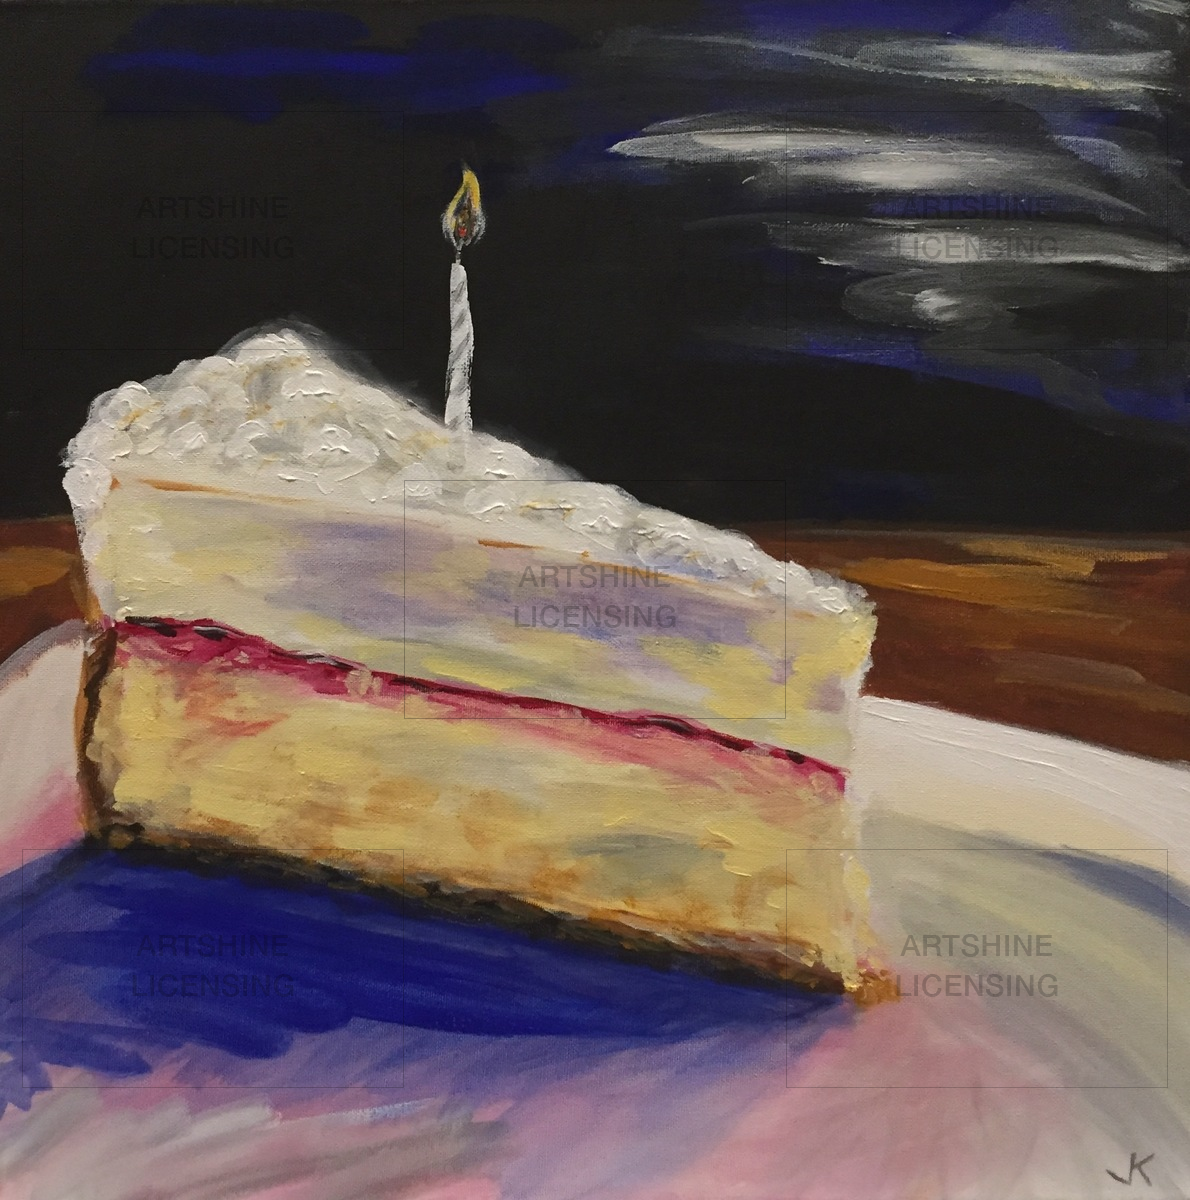 Cheesecake with Candle